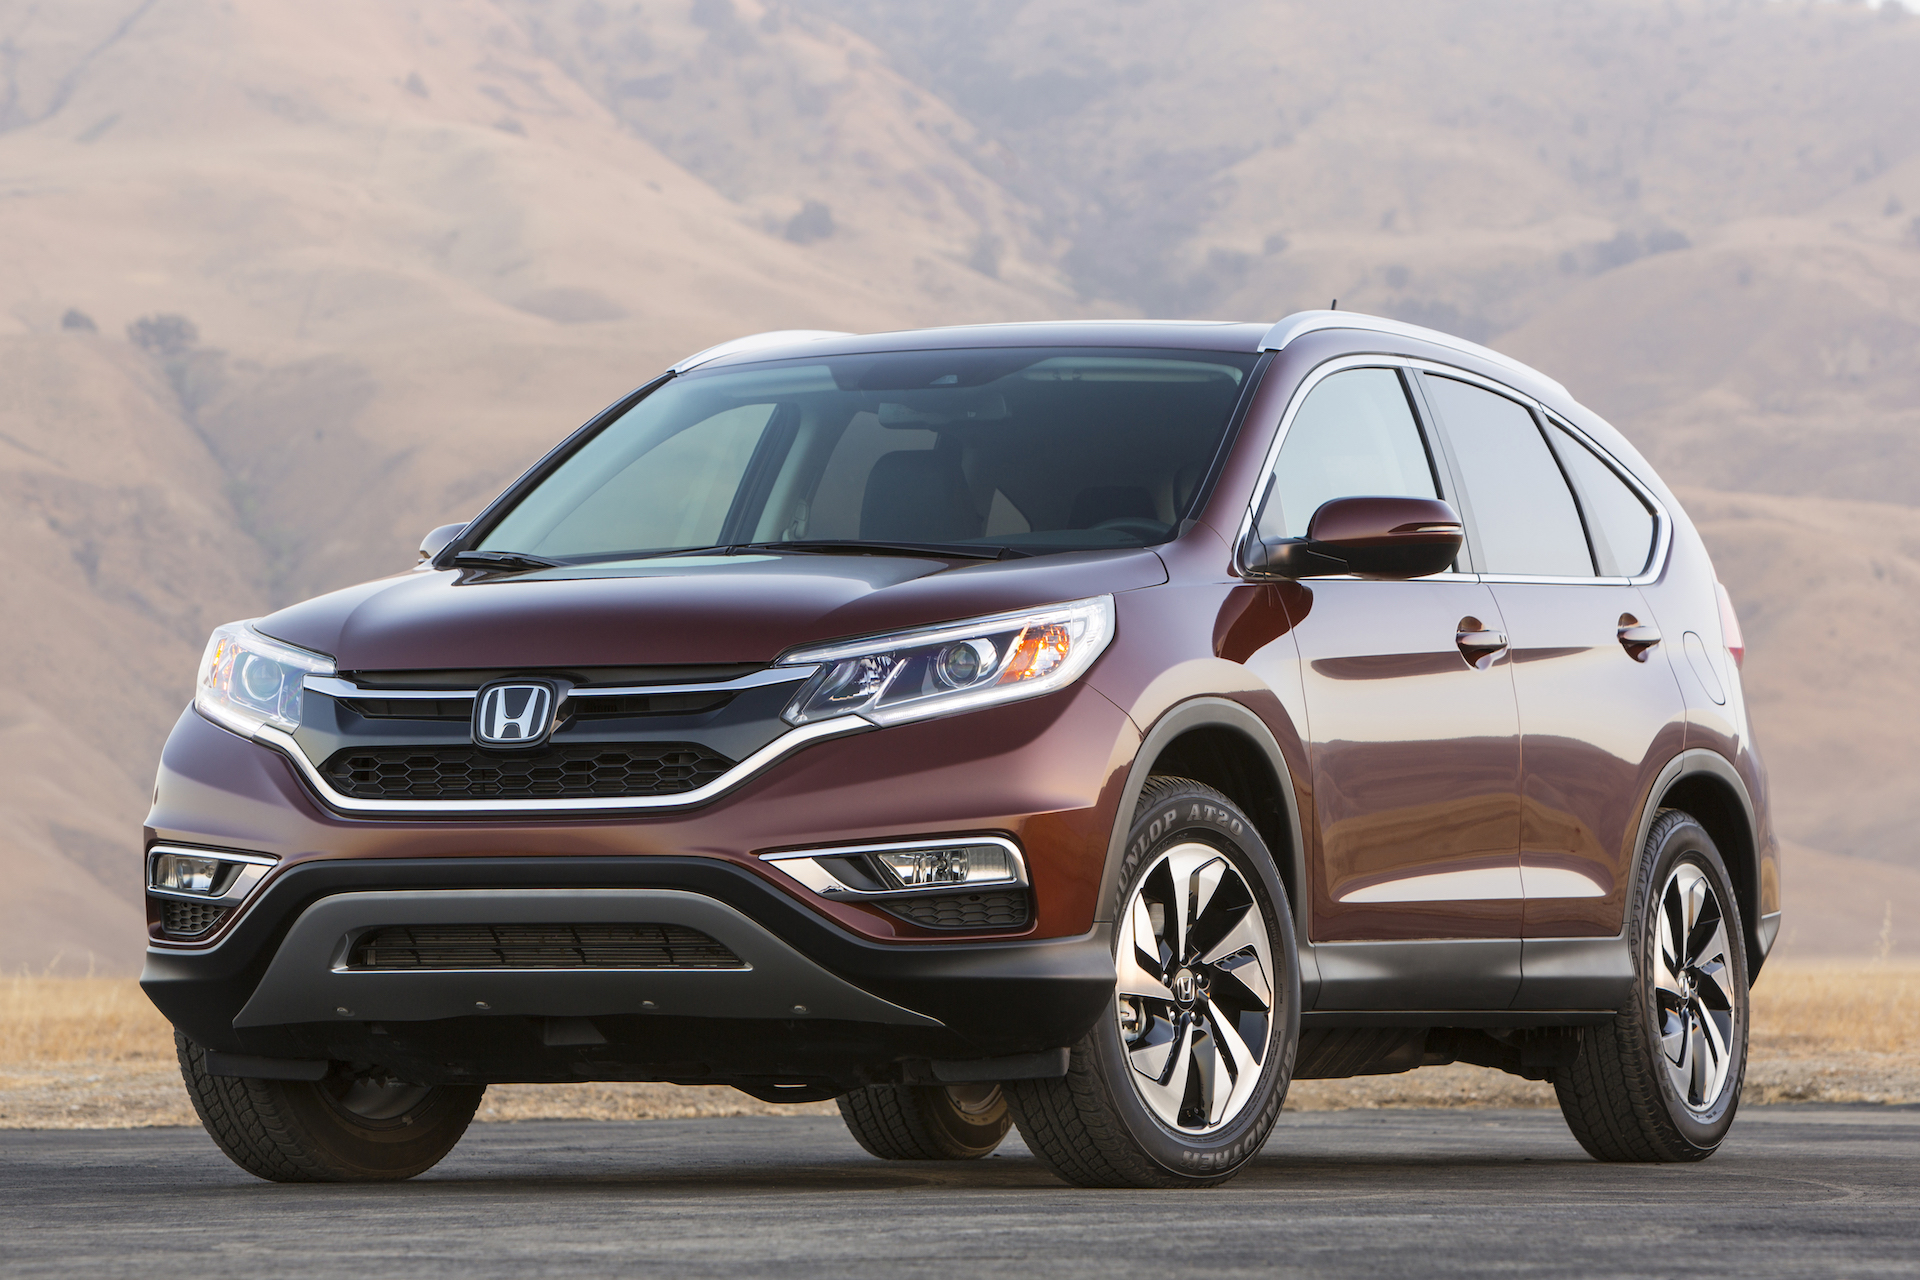 2016 honda cr v review ratings specs prices and photos for Honda crv price